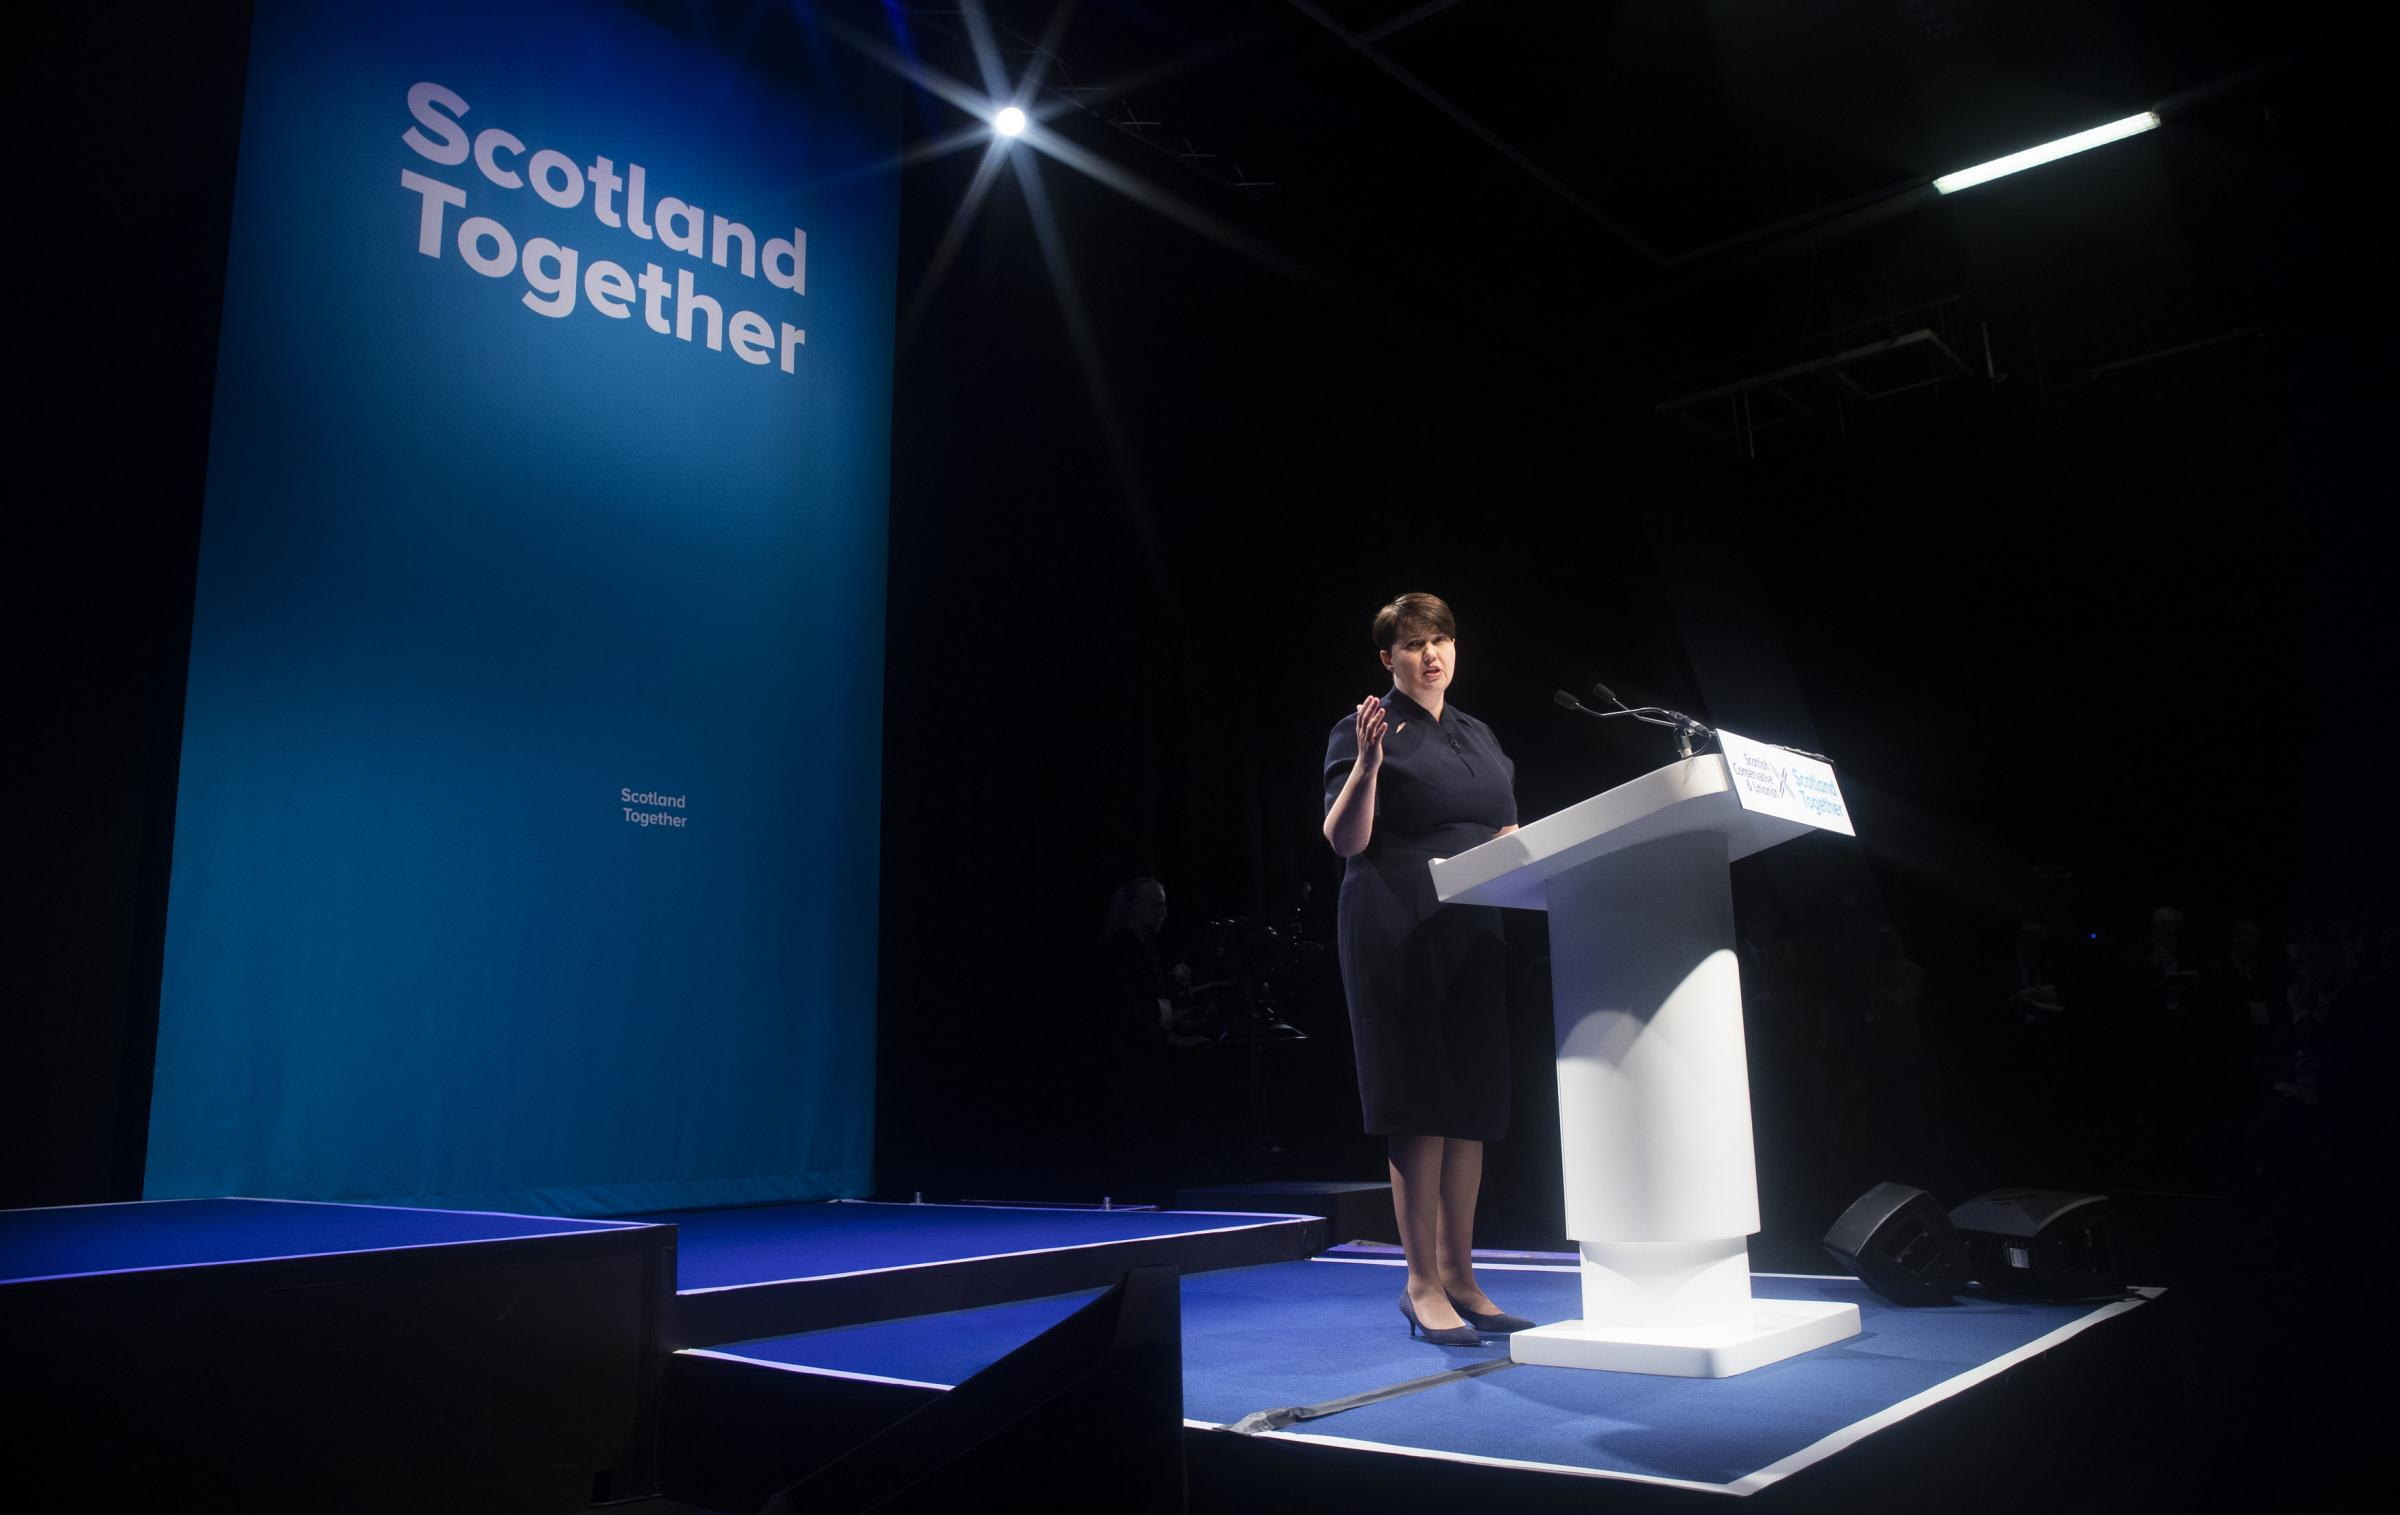 Scottish Tory leader Ruth Davidson outlined her ambitions as polls forecast a heavy defeat for her party